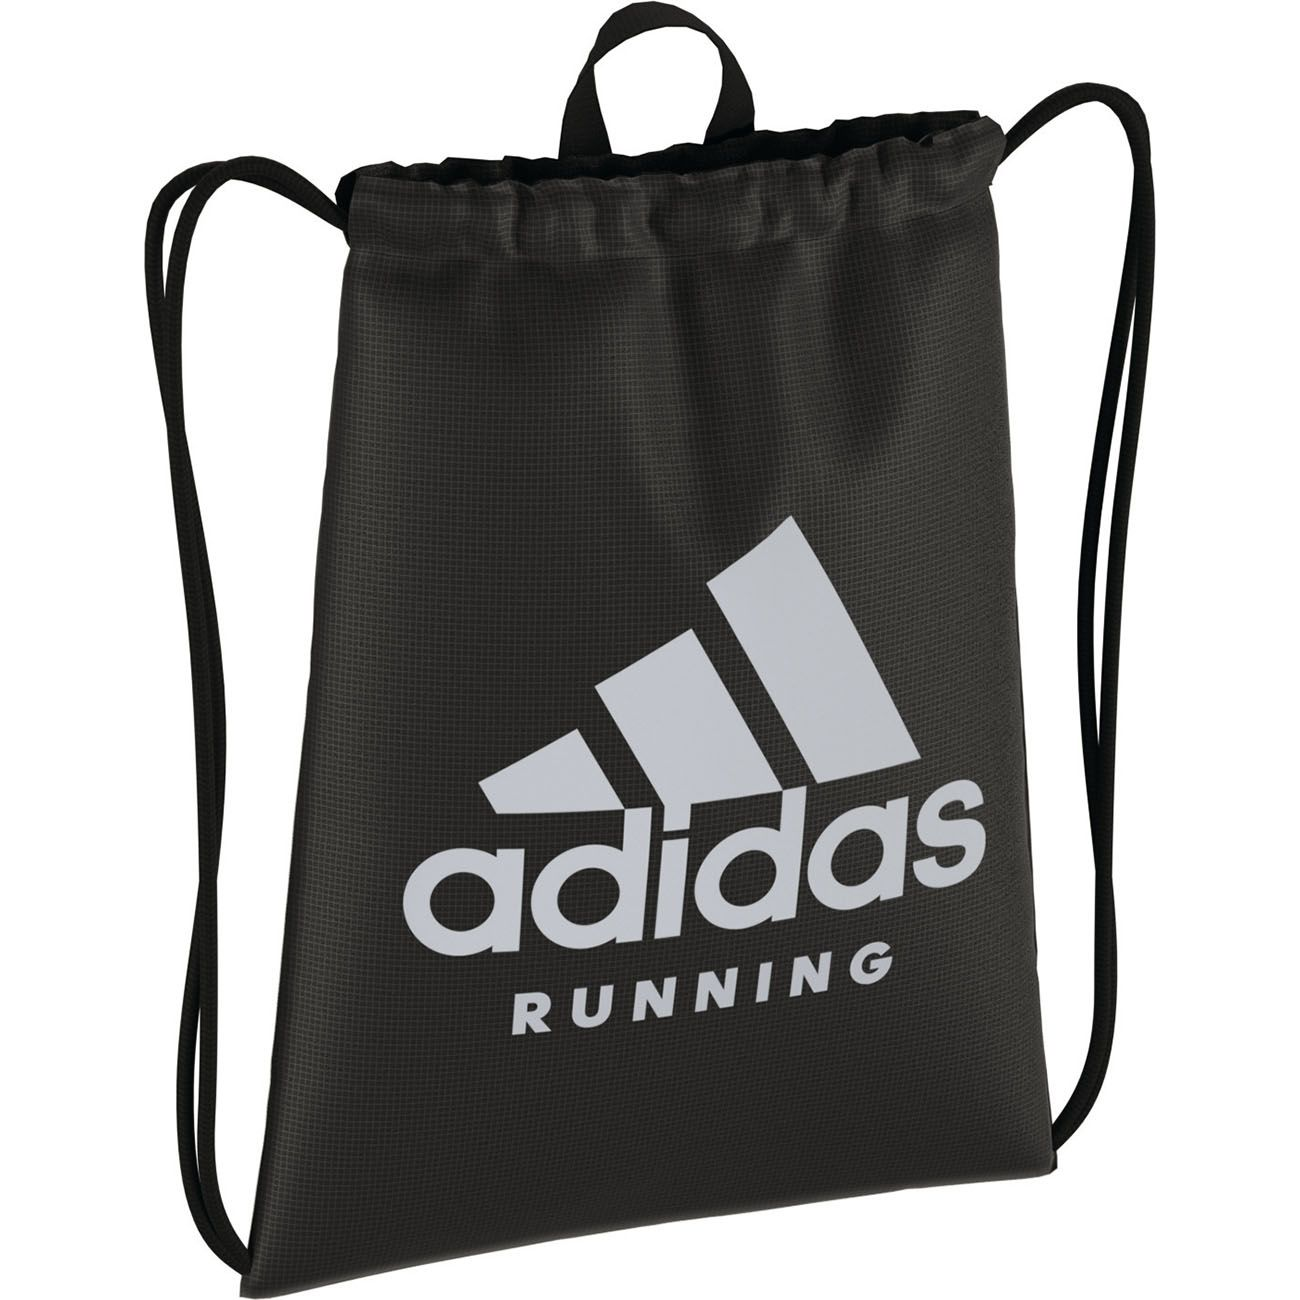 sac de sport adidas running gym achat et prix pas cher. Black Bedroom Furniture Sets. Home Design Ideas